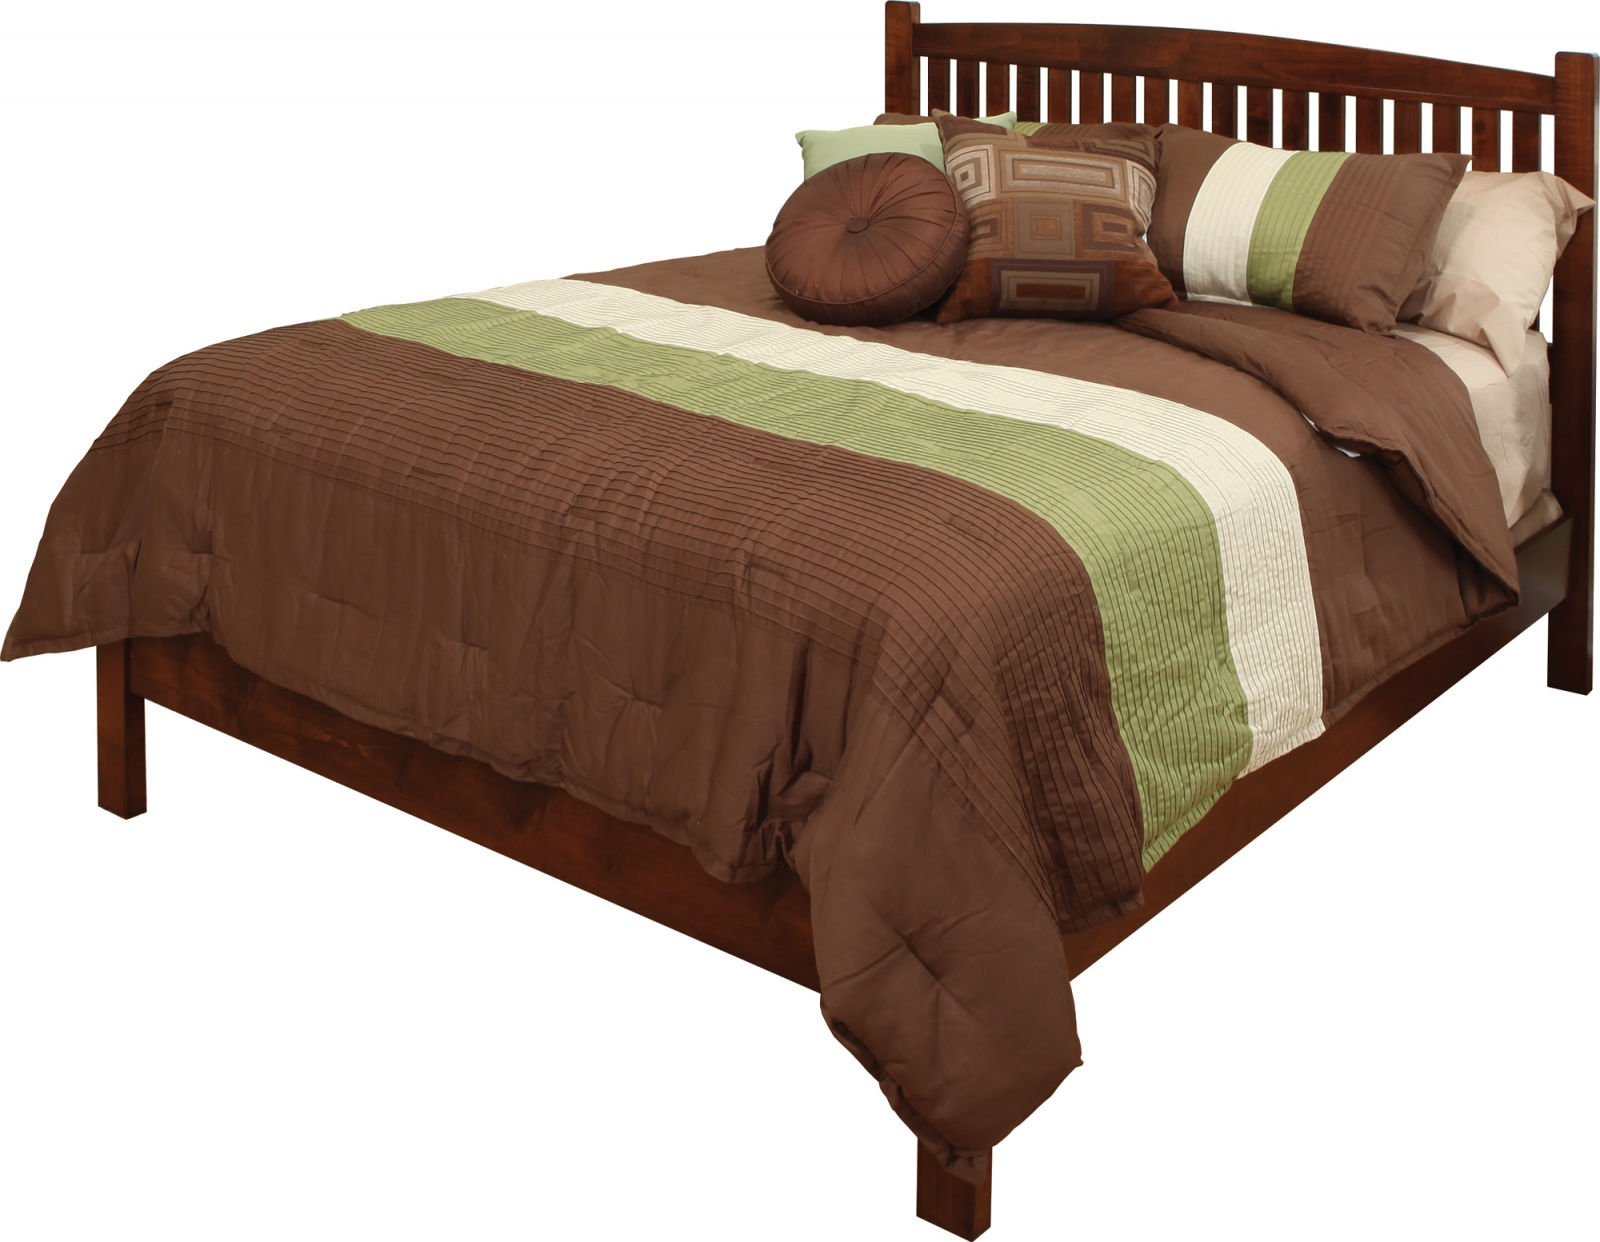 Dreamland Bed